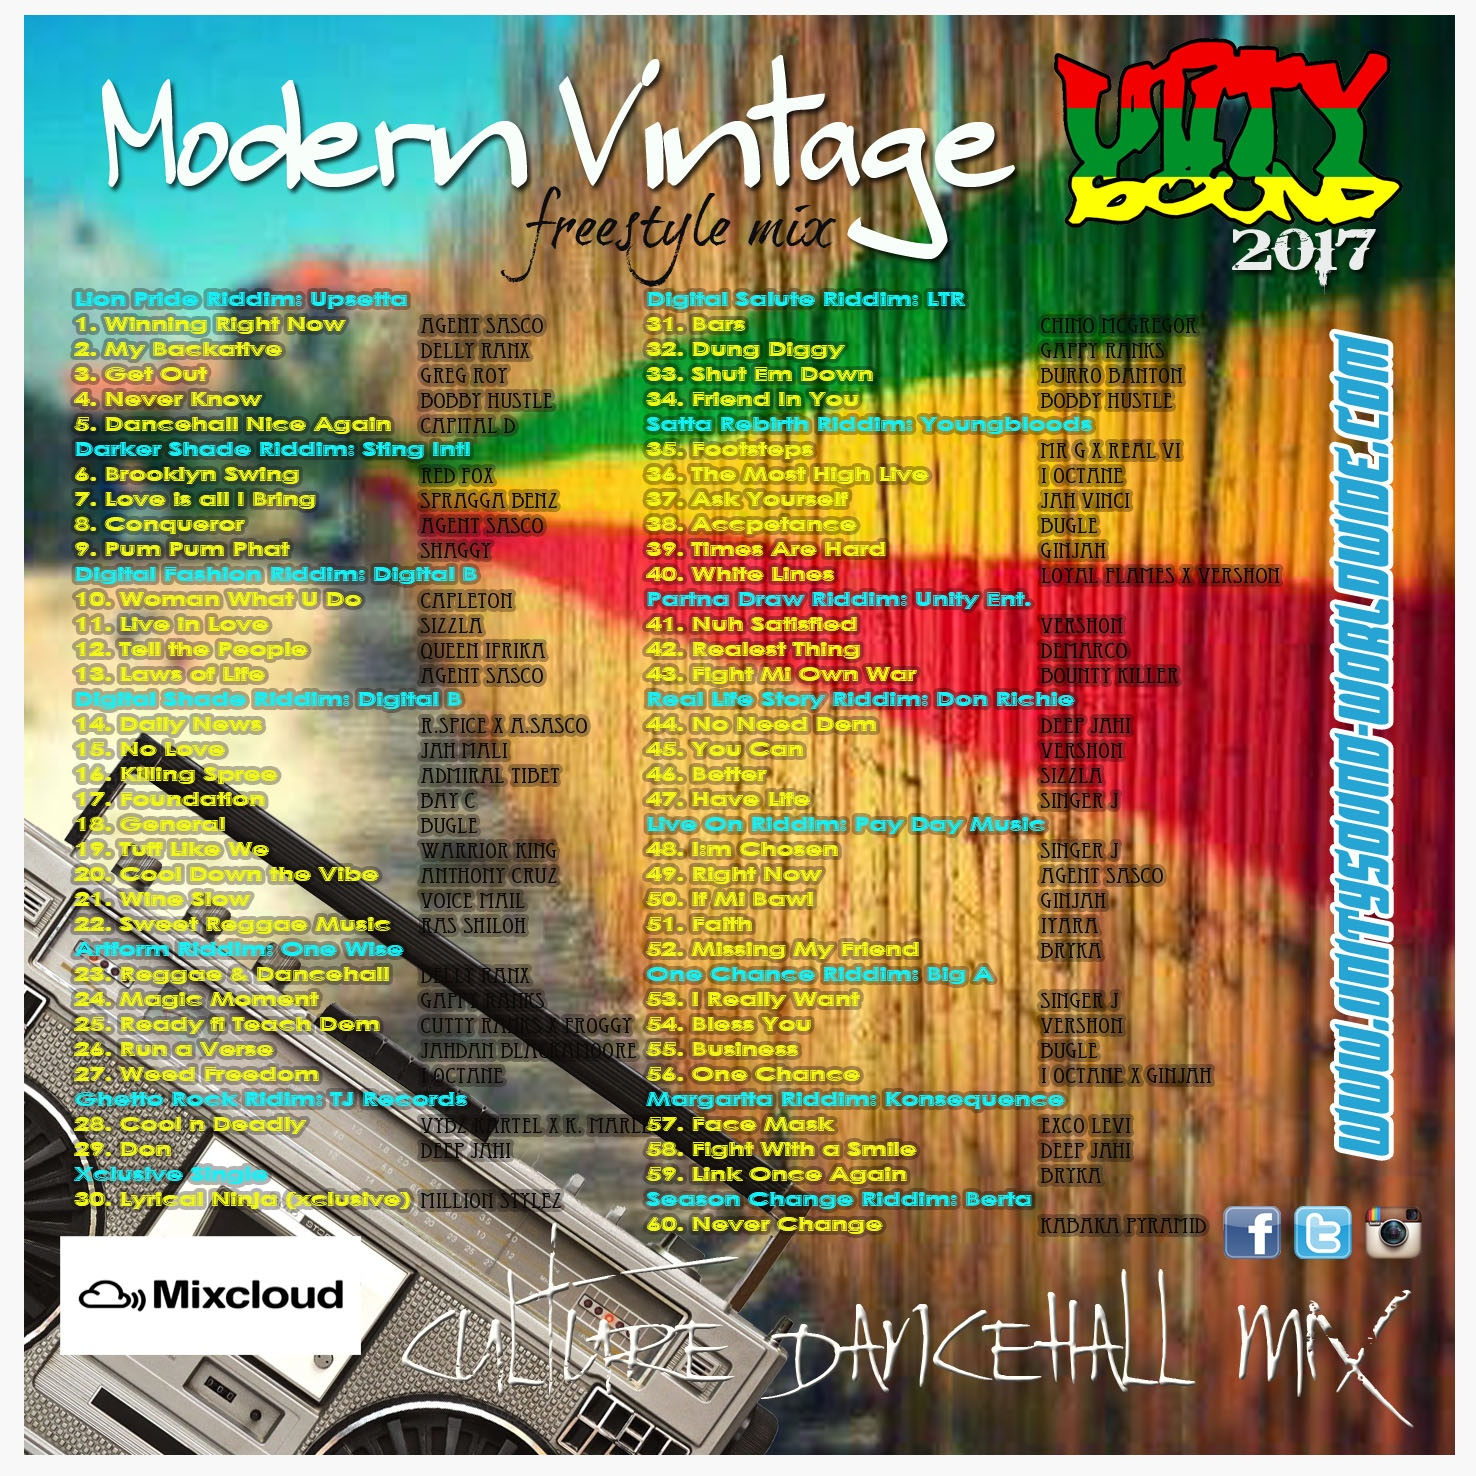 [Multi-Tracked Download] Unity Sound - Royal Warriors meets Dancehall Moods - 2017]